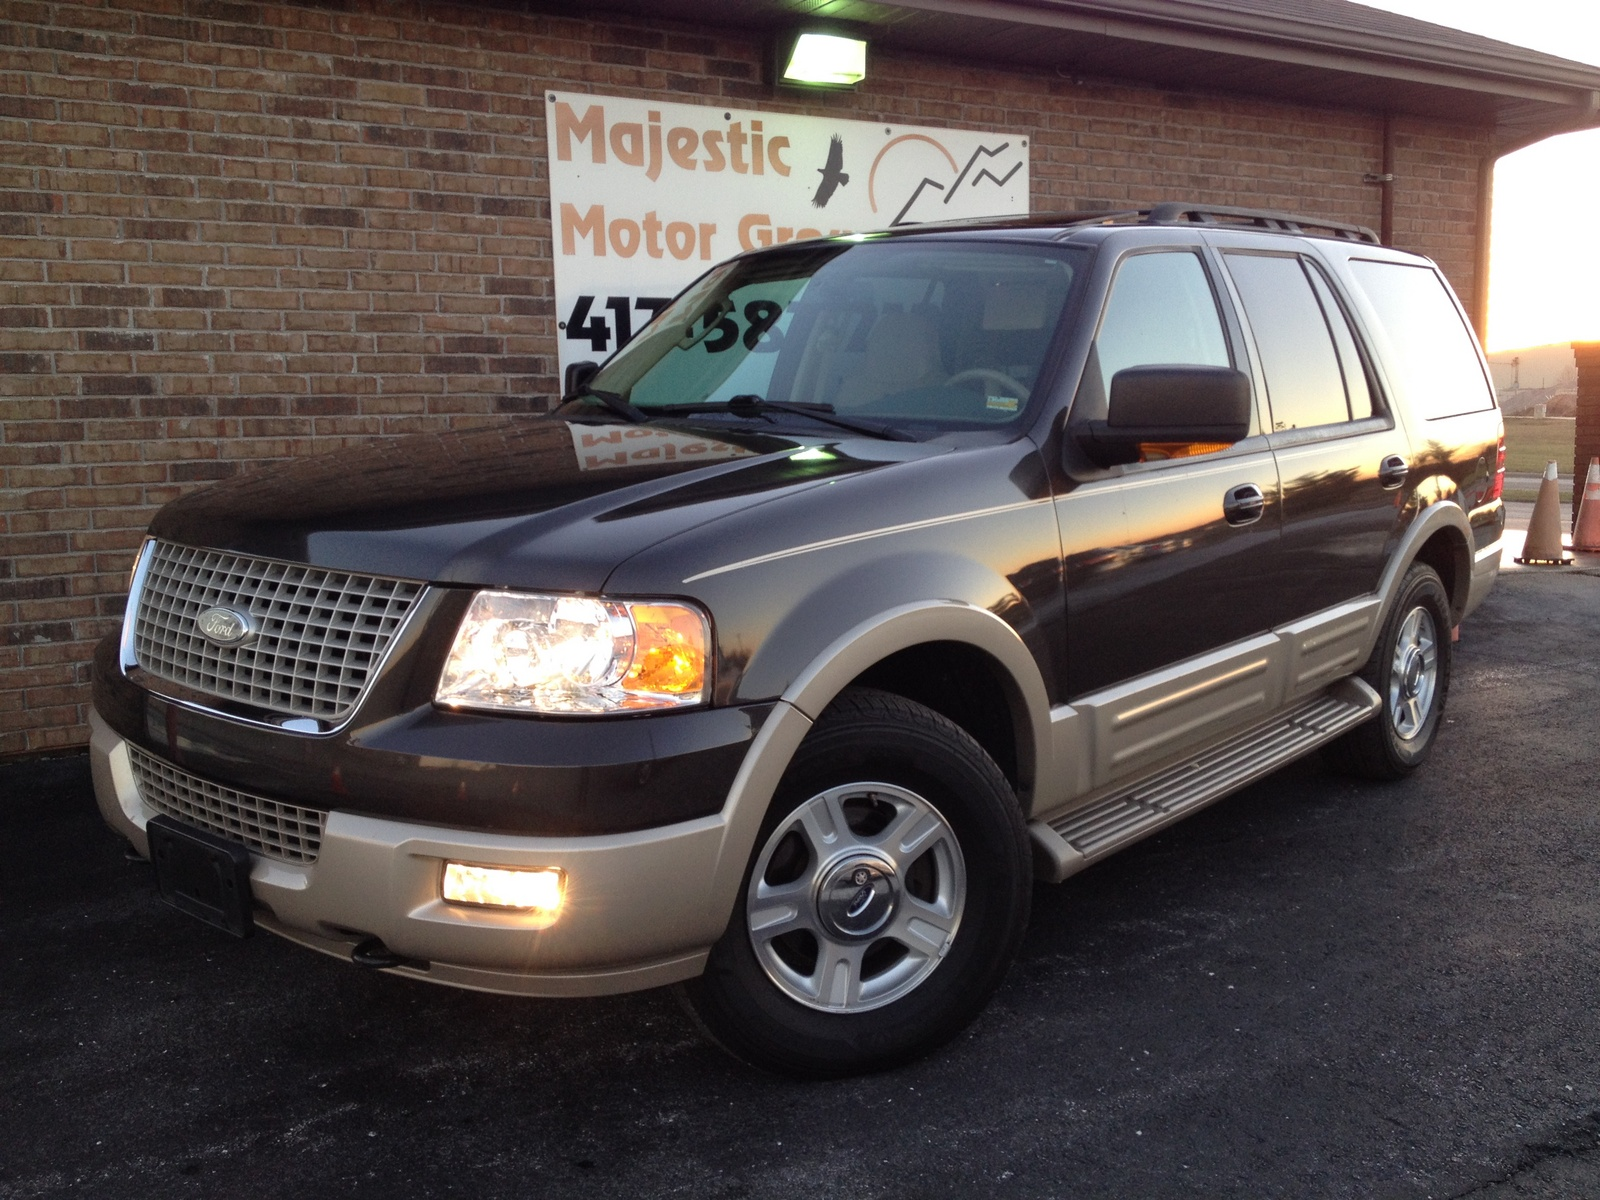 2006 ford expedition pictures cargurus. Black Bedroom Furniture Sets. Home Design Ideas